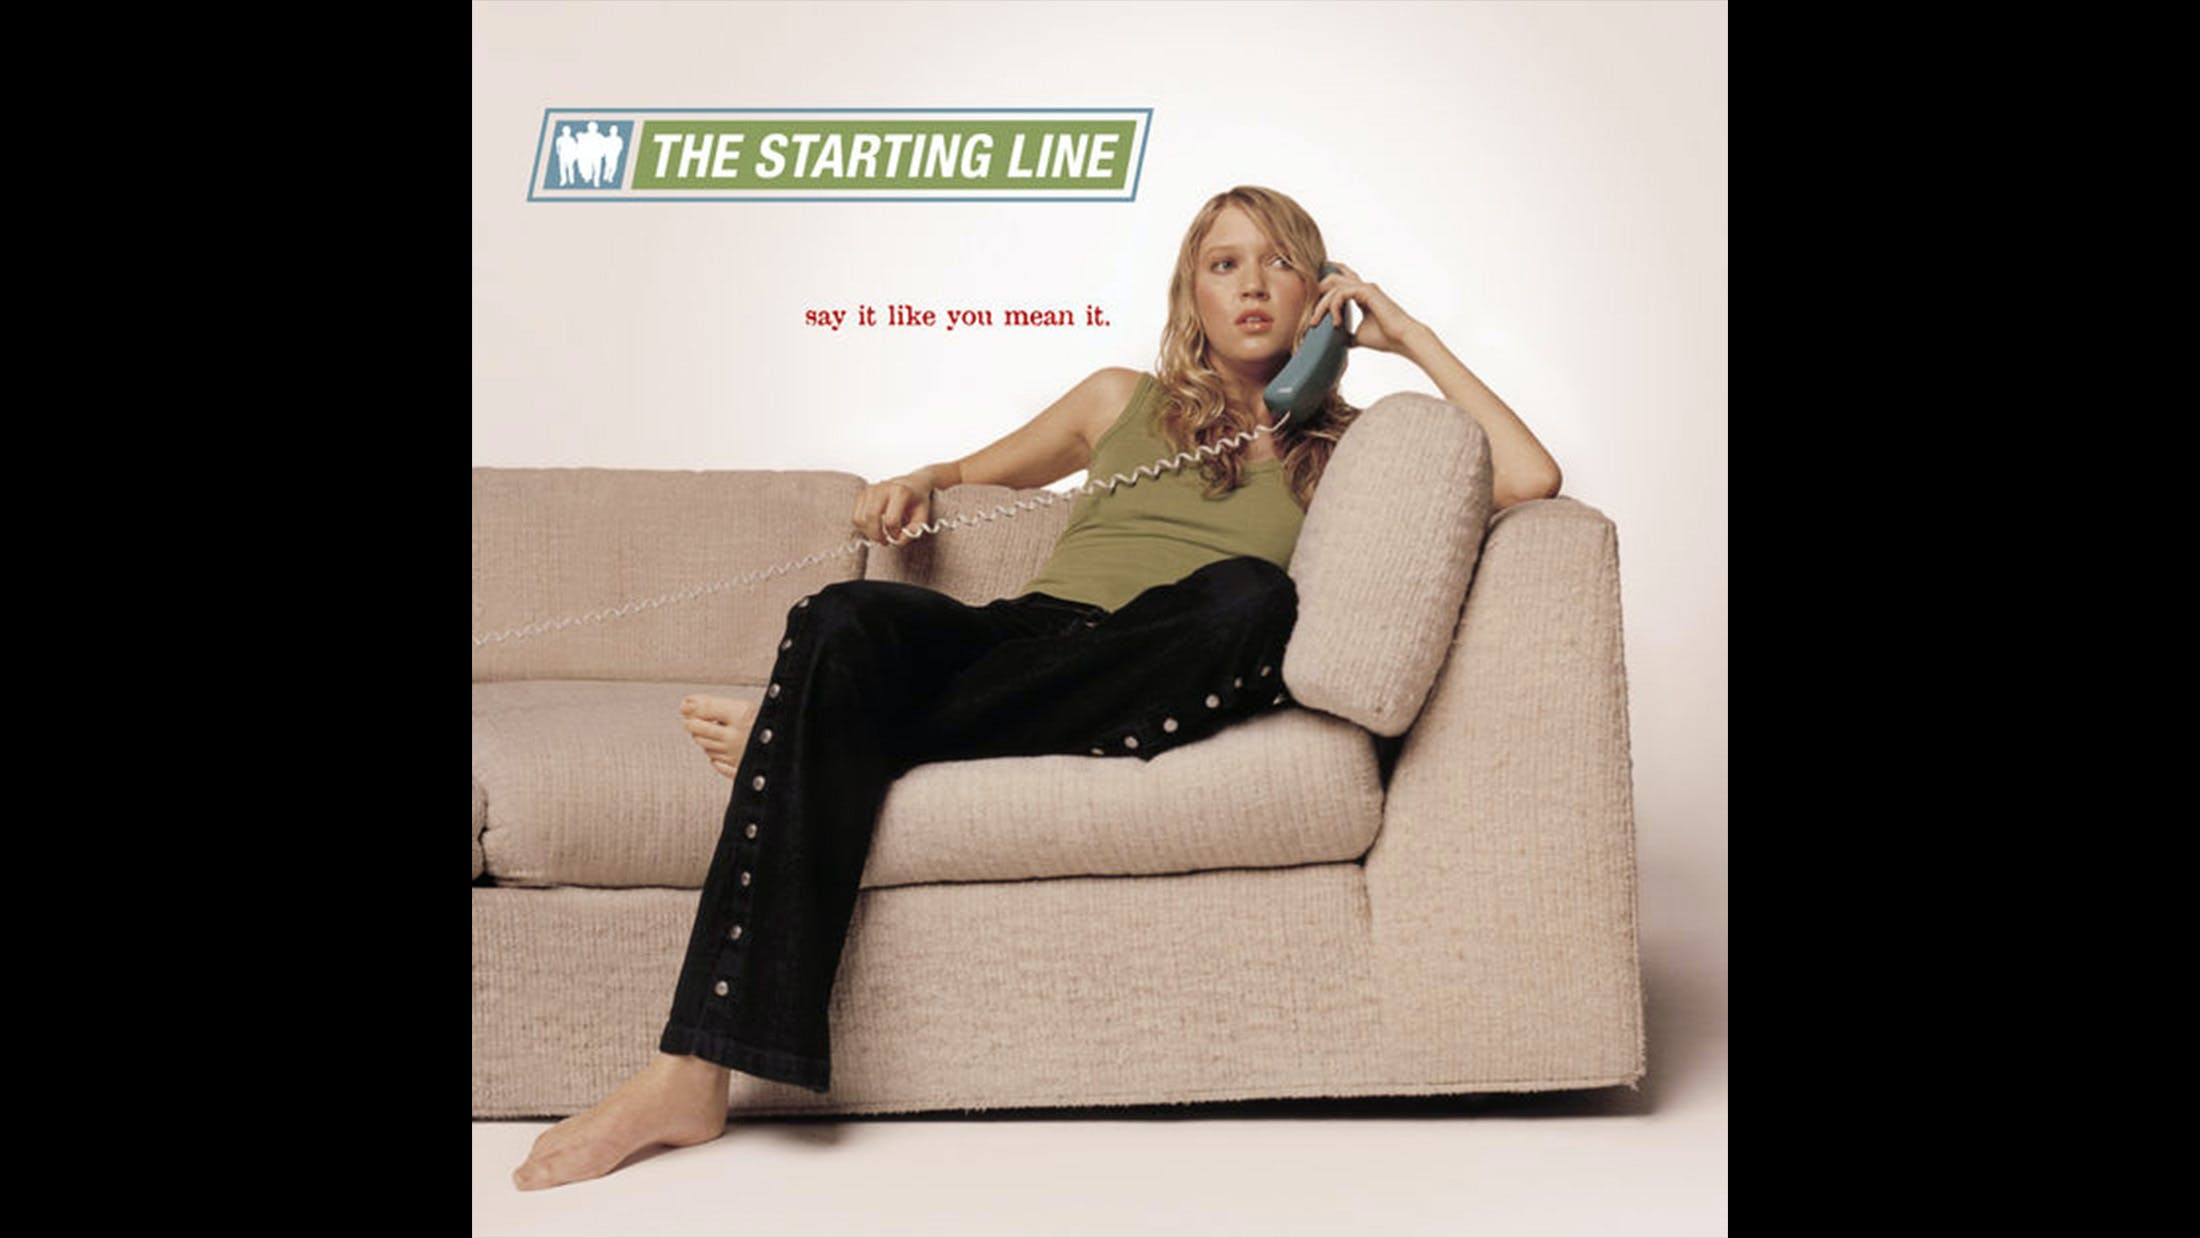 27. The Starting Line - Say It Like You Mean It (2002)